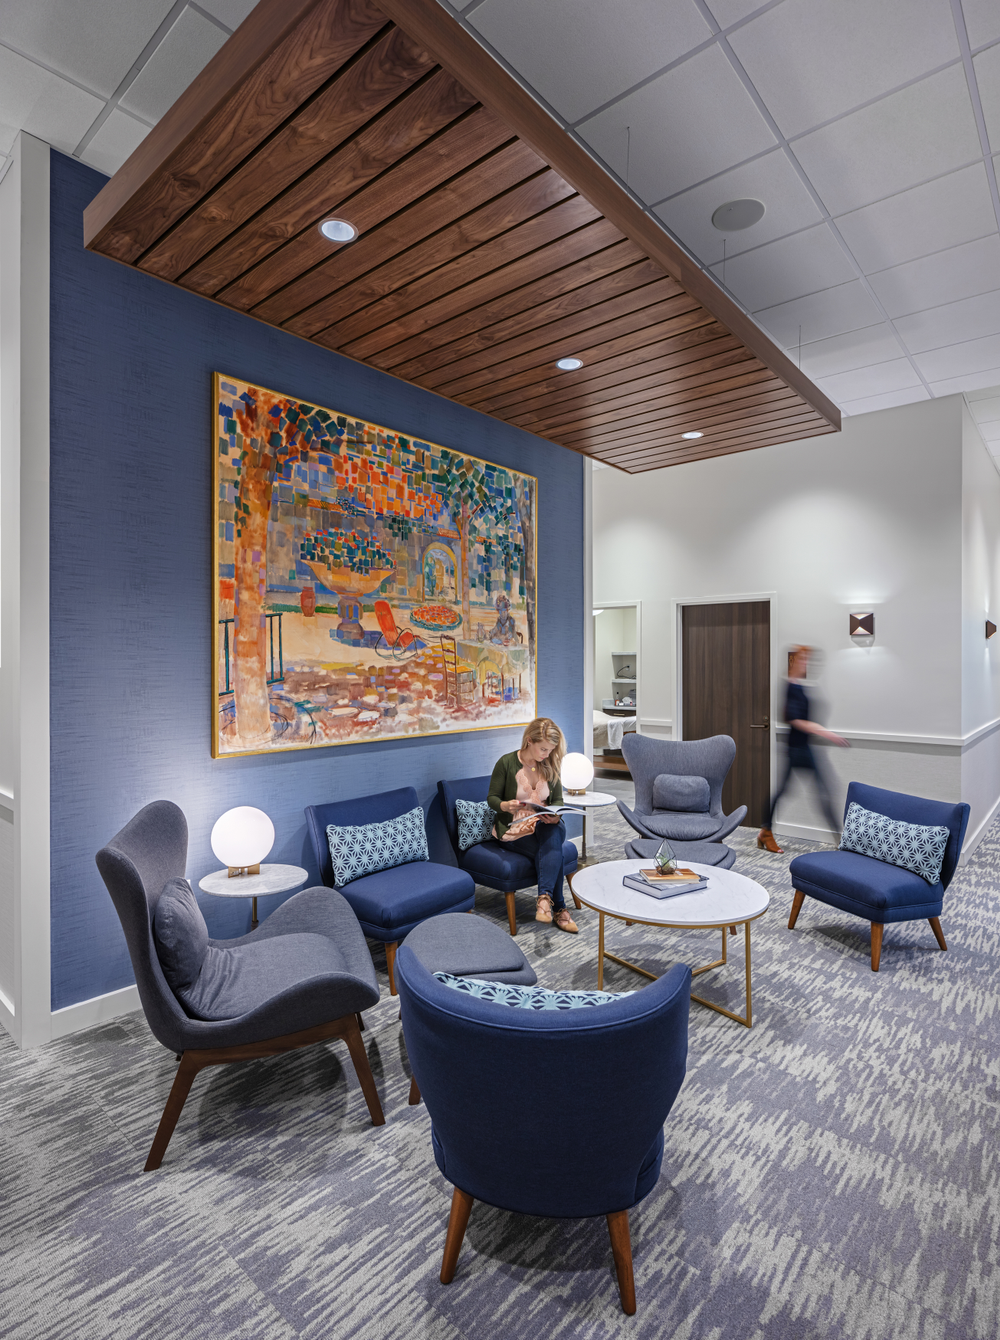 A bold blue wall, drop-planked ceiling and lavish artwork create a soothing place for clients to wait for a service.